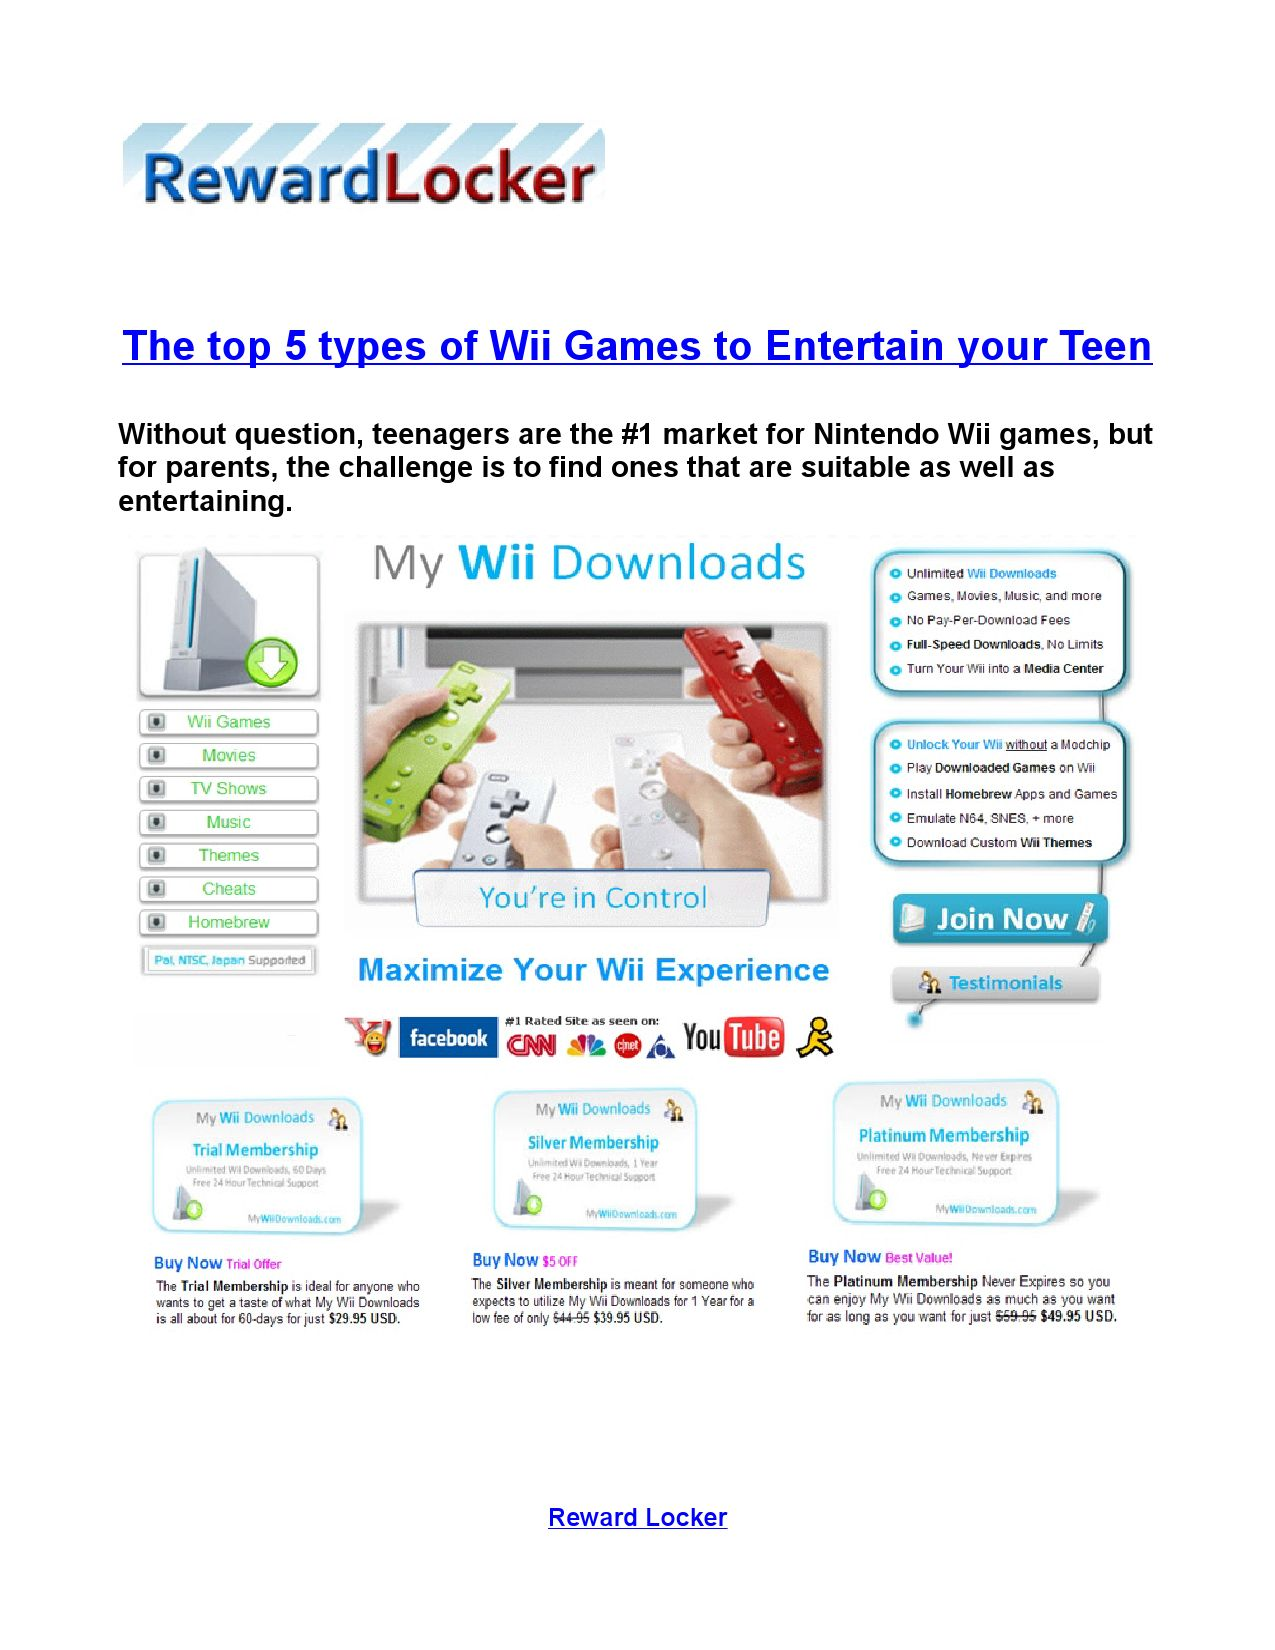 The top 5 types of Wii Games to Entertain your Teen by Matt